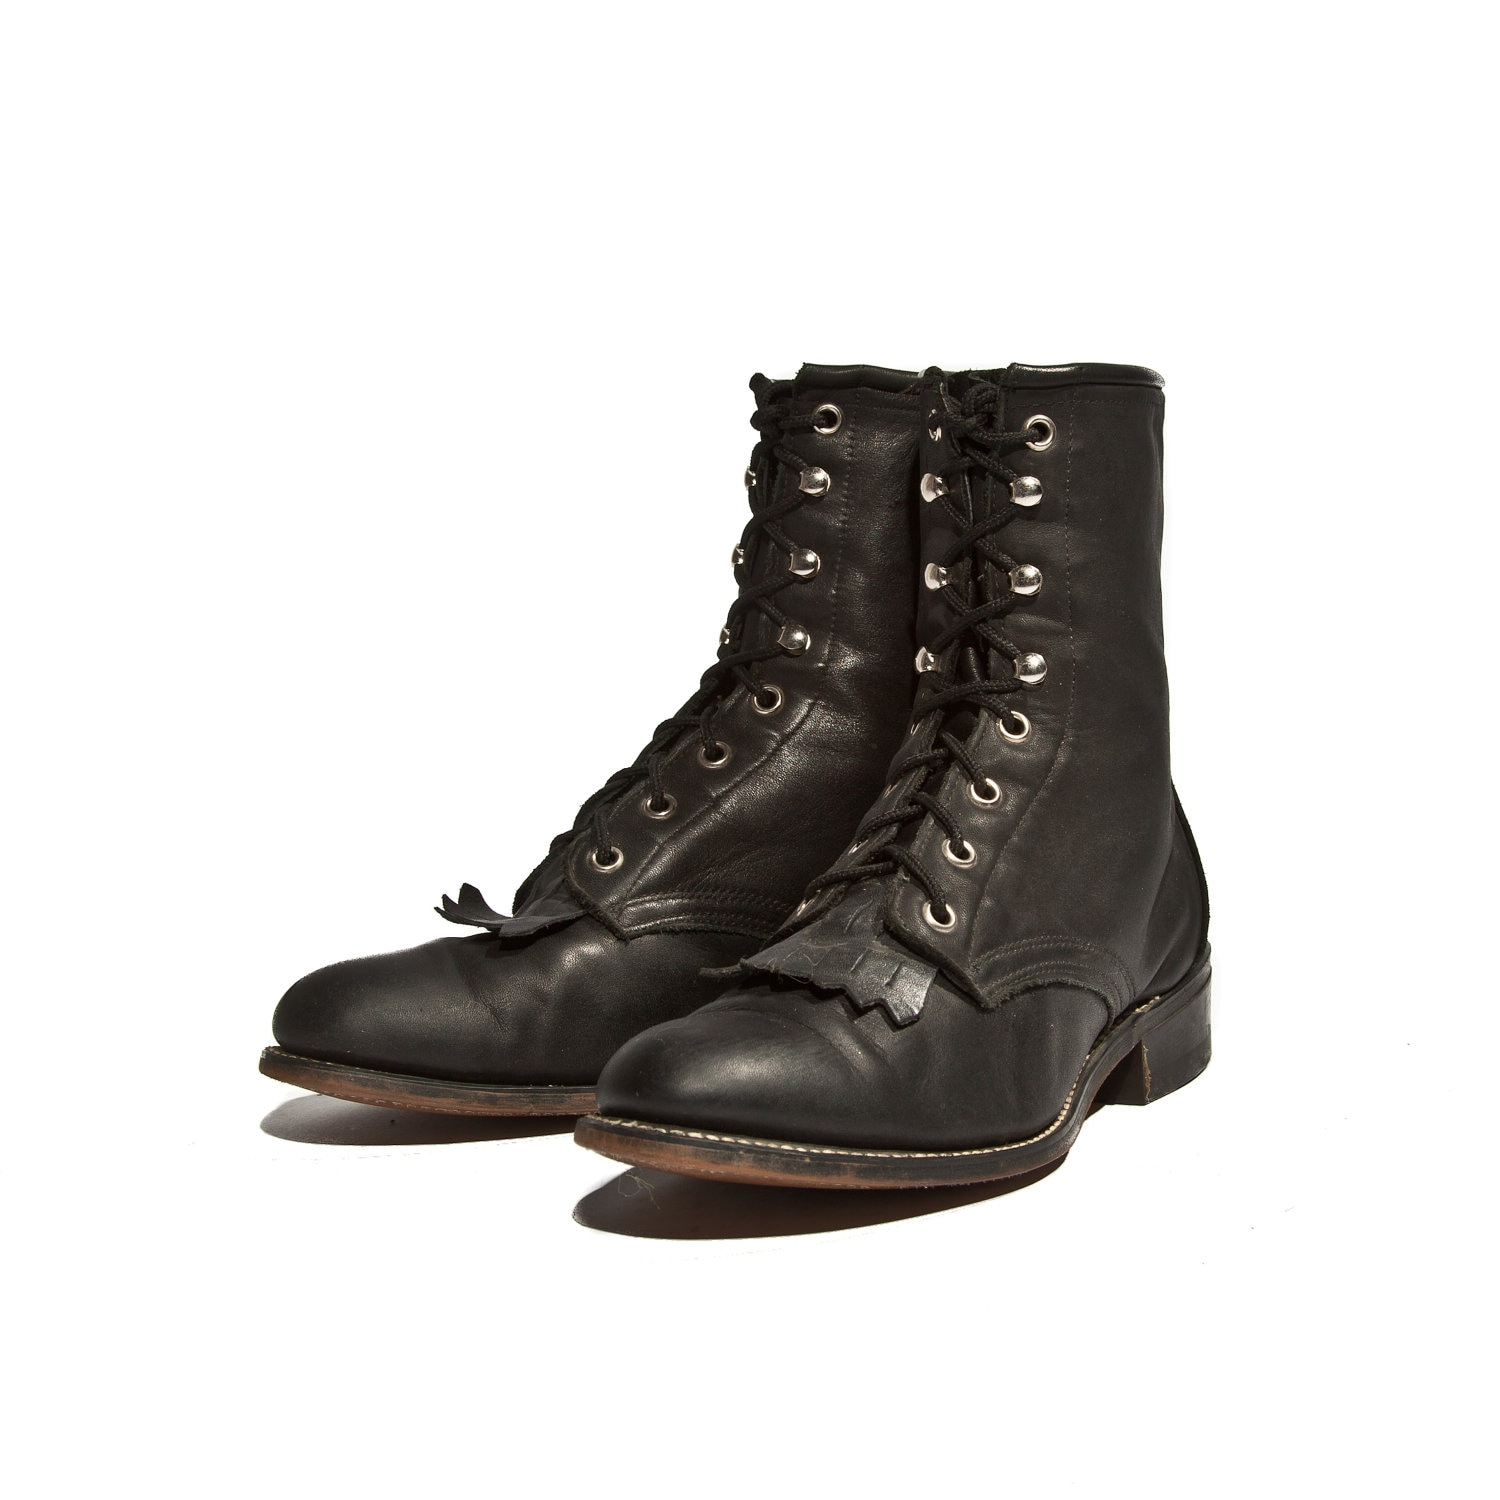 vintage laredo lace up roper boots western style in black